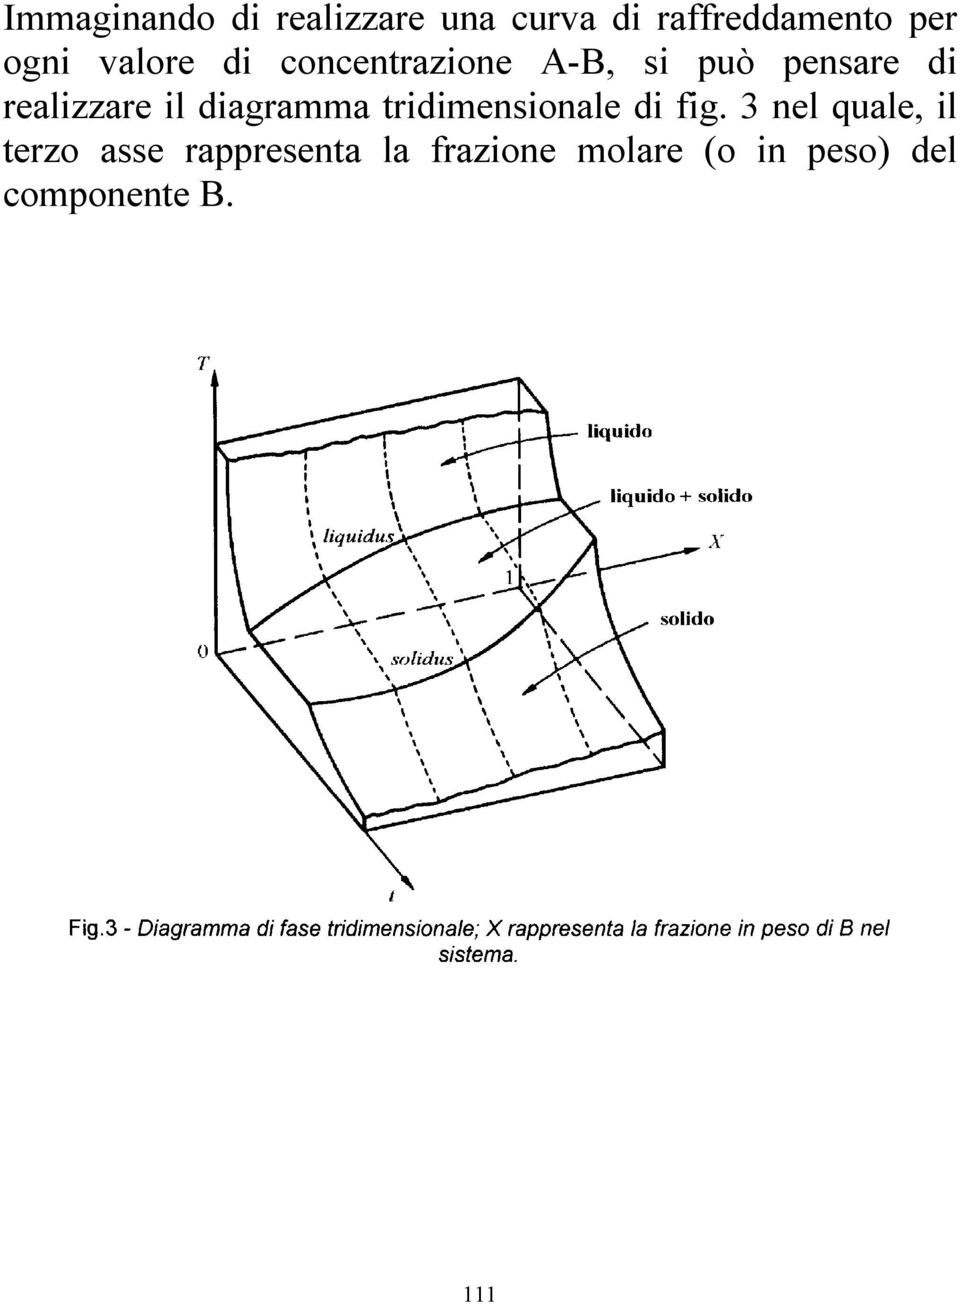 diagramma tridimensionale di fig.